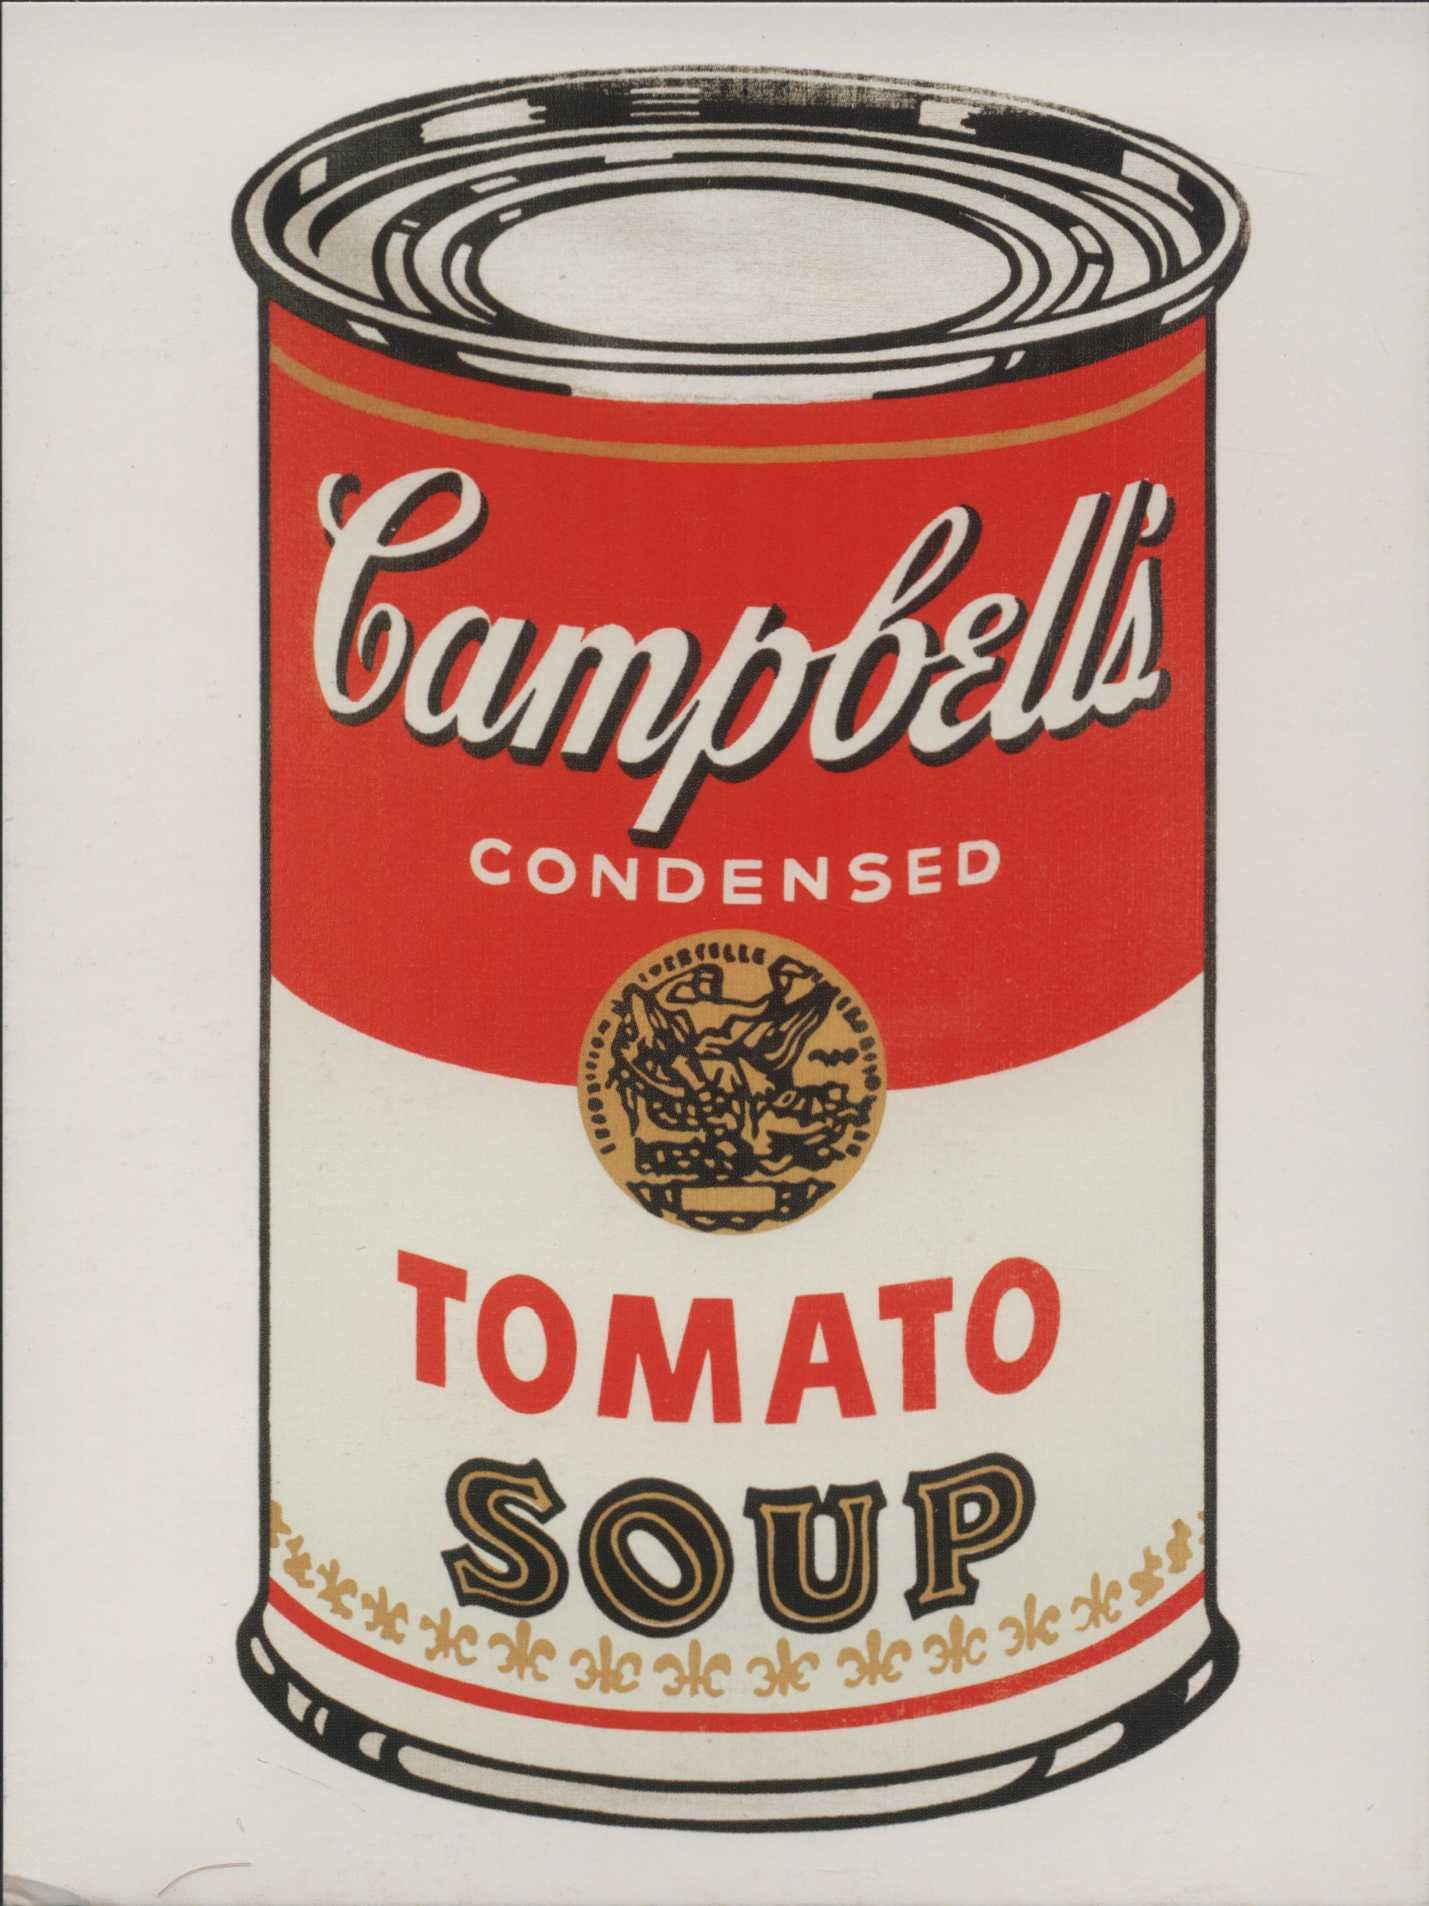 Andy Warhol Tomato Soup Red And White Can Pop Art Modern Postcard R001882 By Markopostcards On Etsy Pop Art Painting Pop Art Famous Pop Art